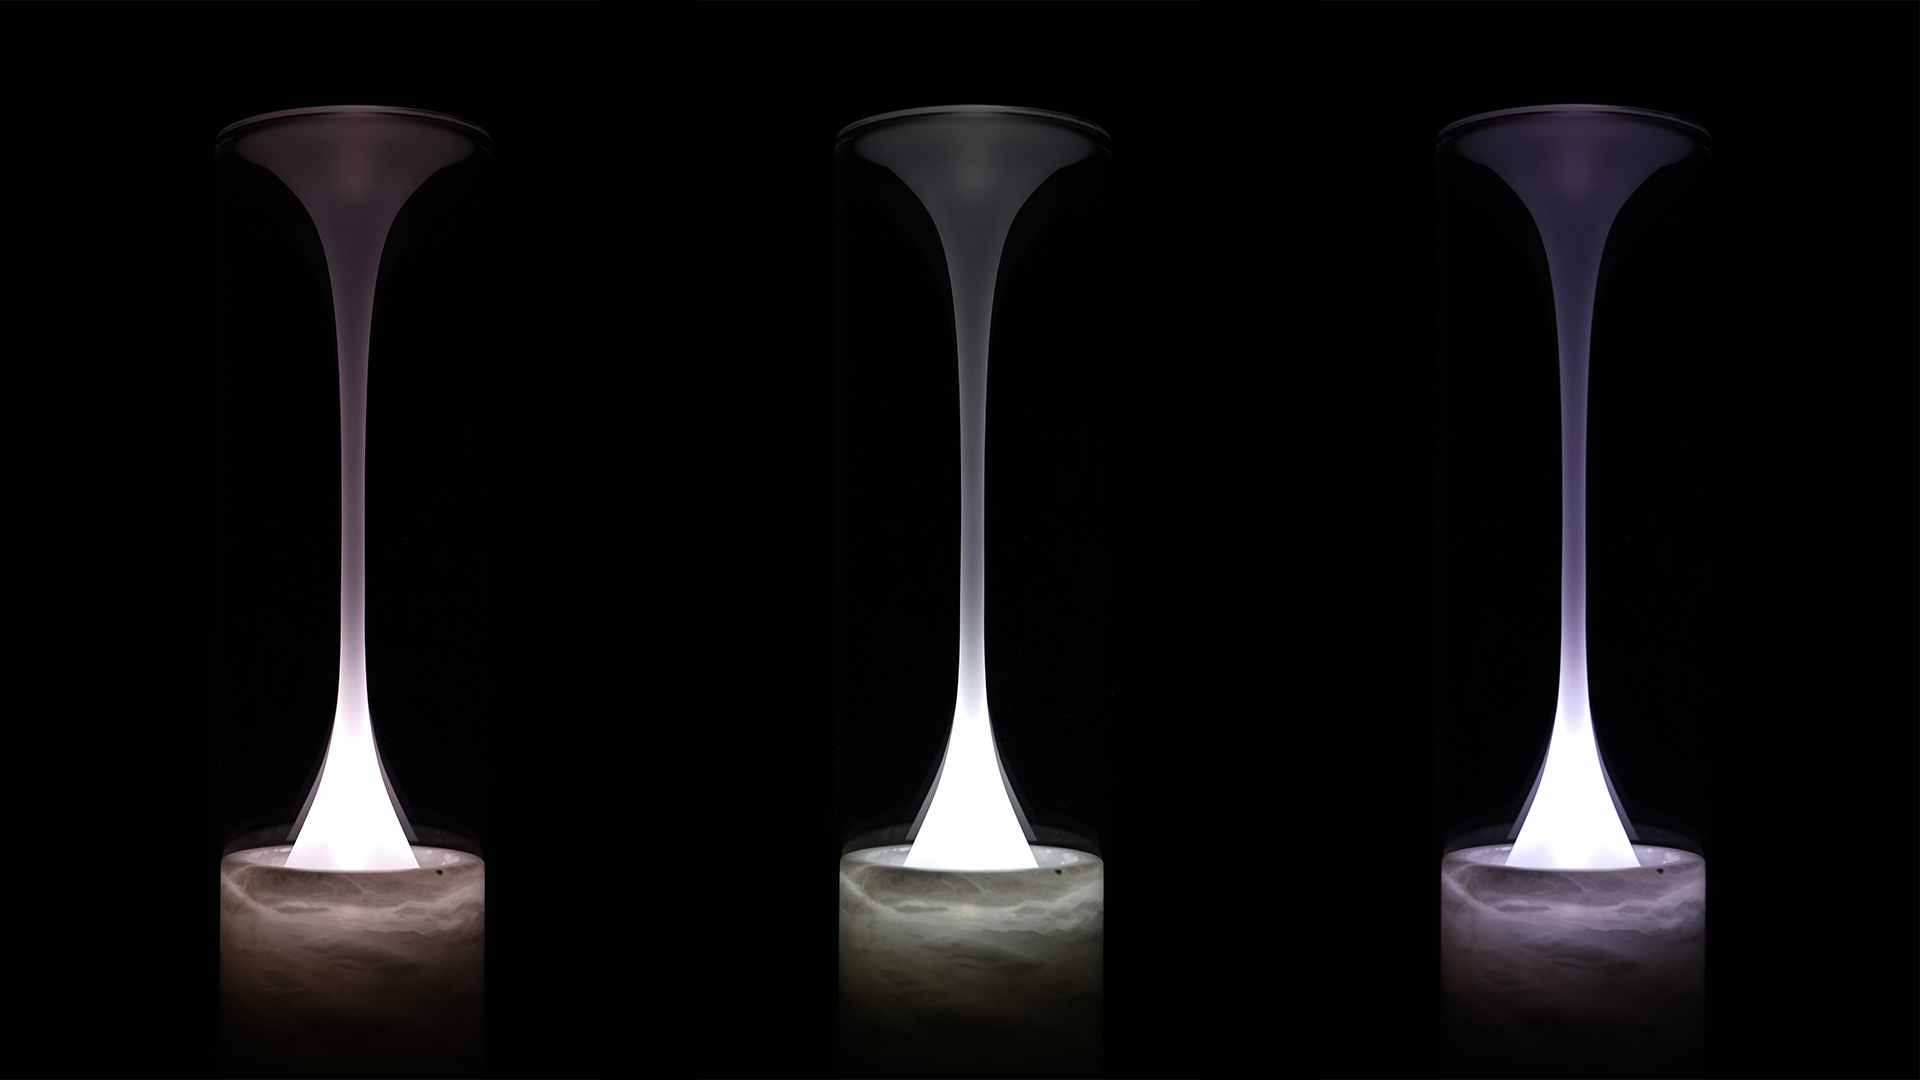 Polar Light by BRINK - three lamps together